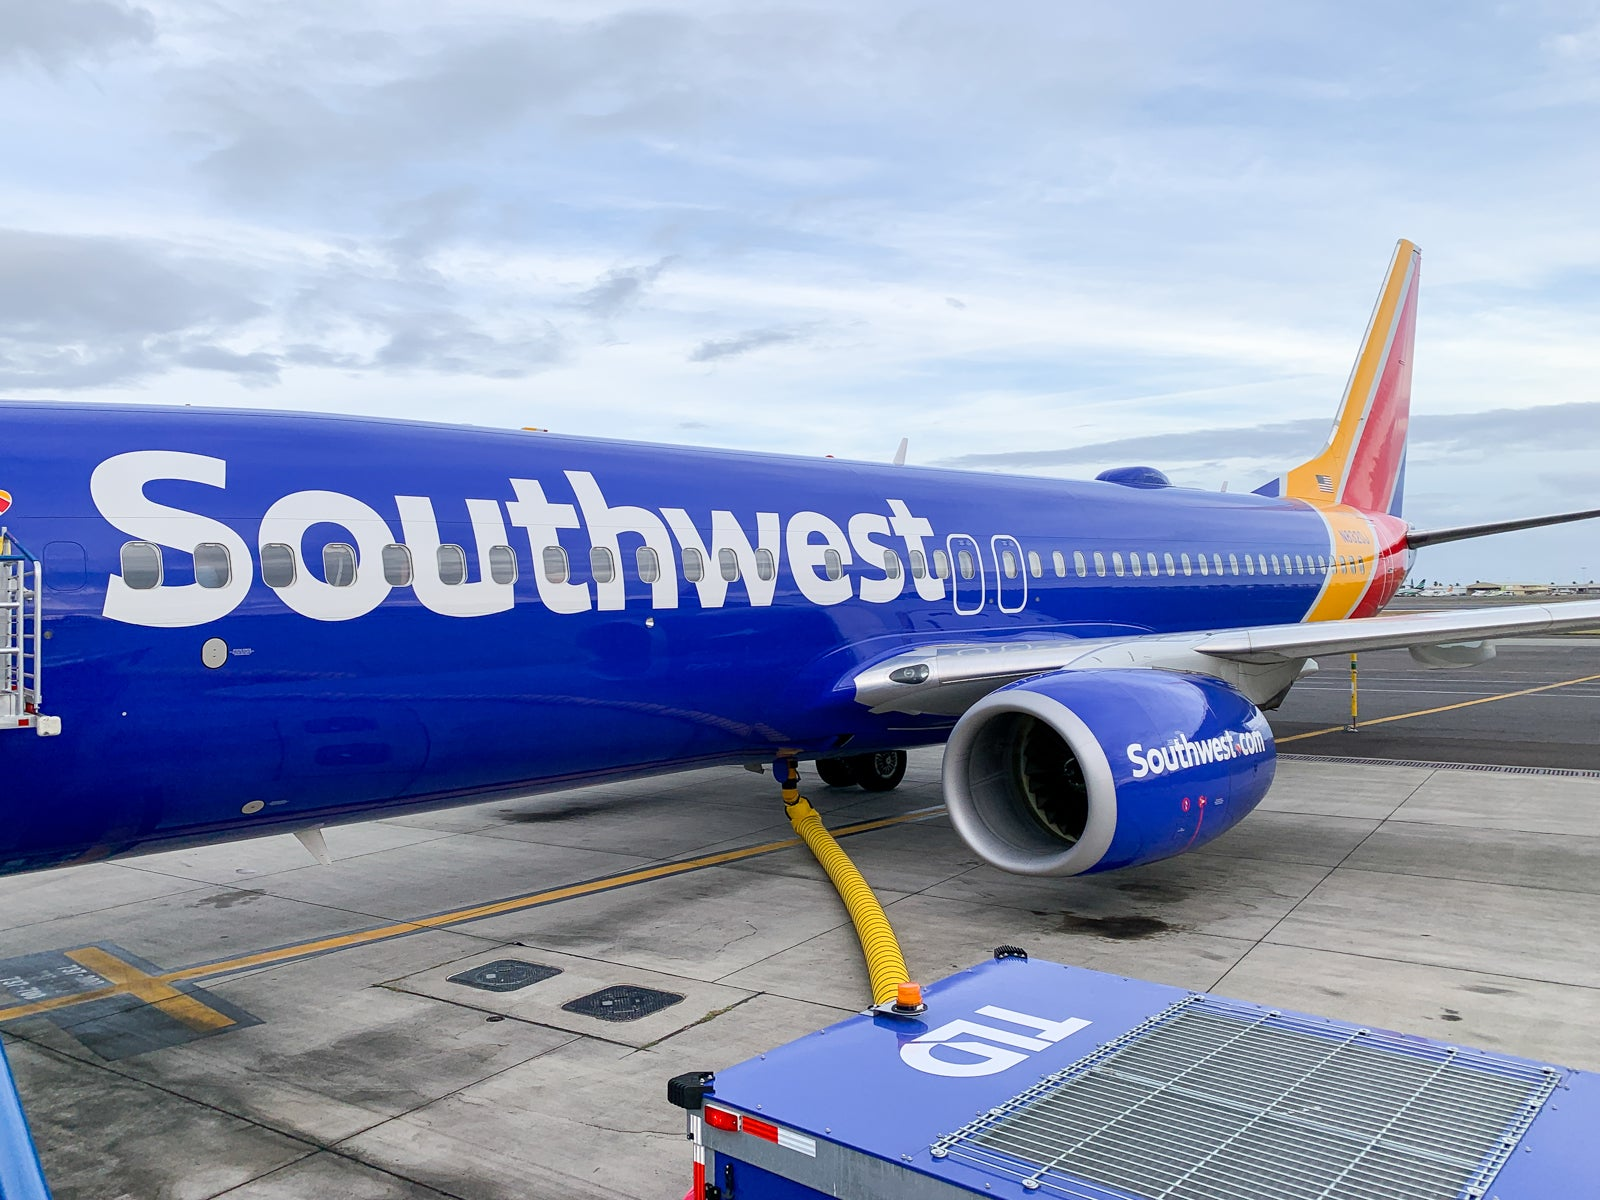 Southwest Airlines offering flights to Hawaii from $99 or 6,864 points into 2021